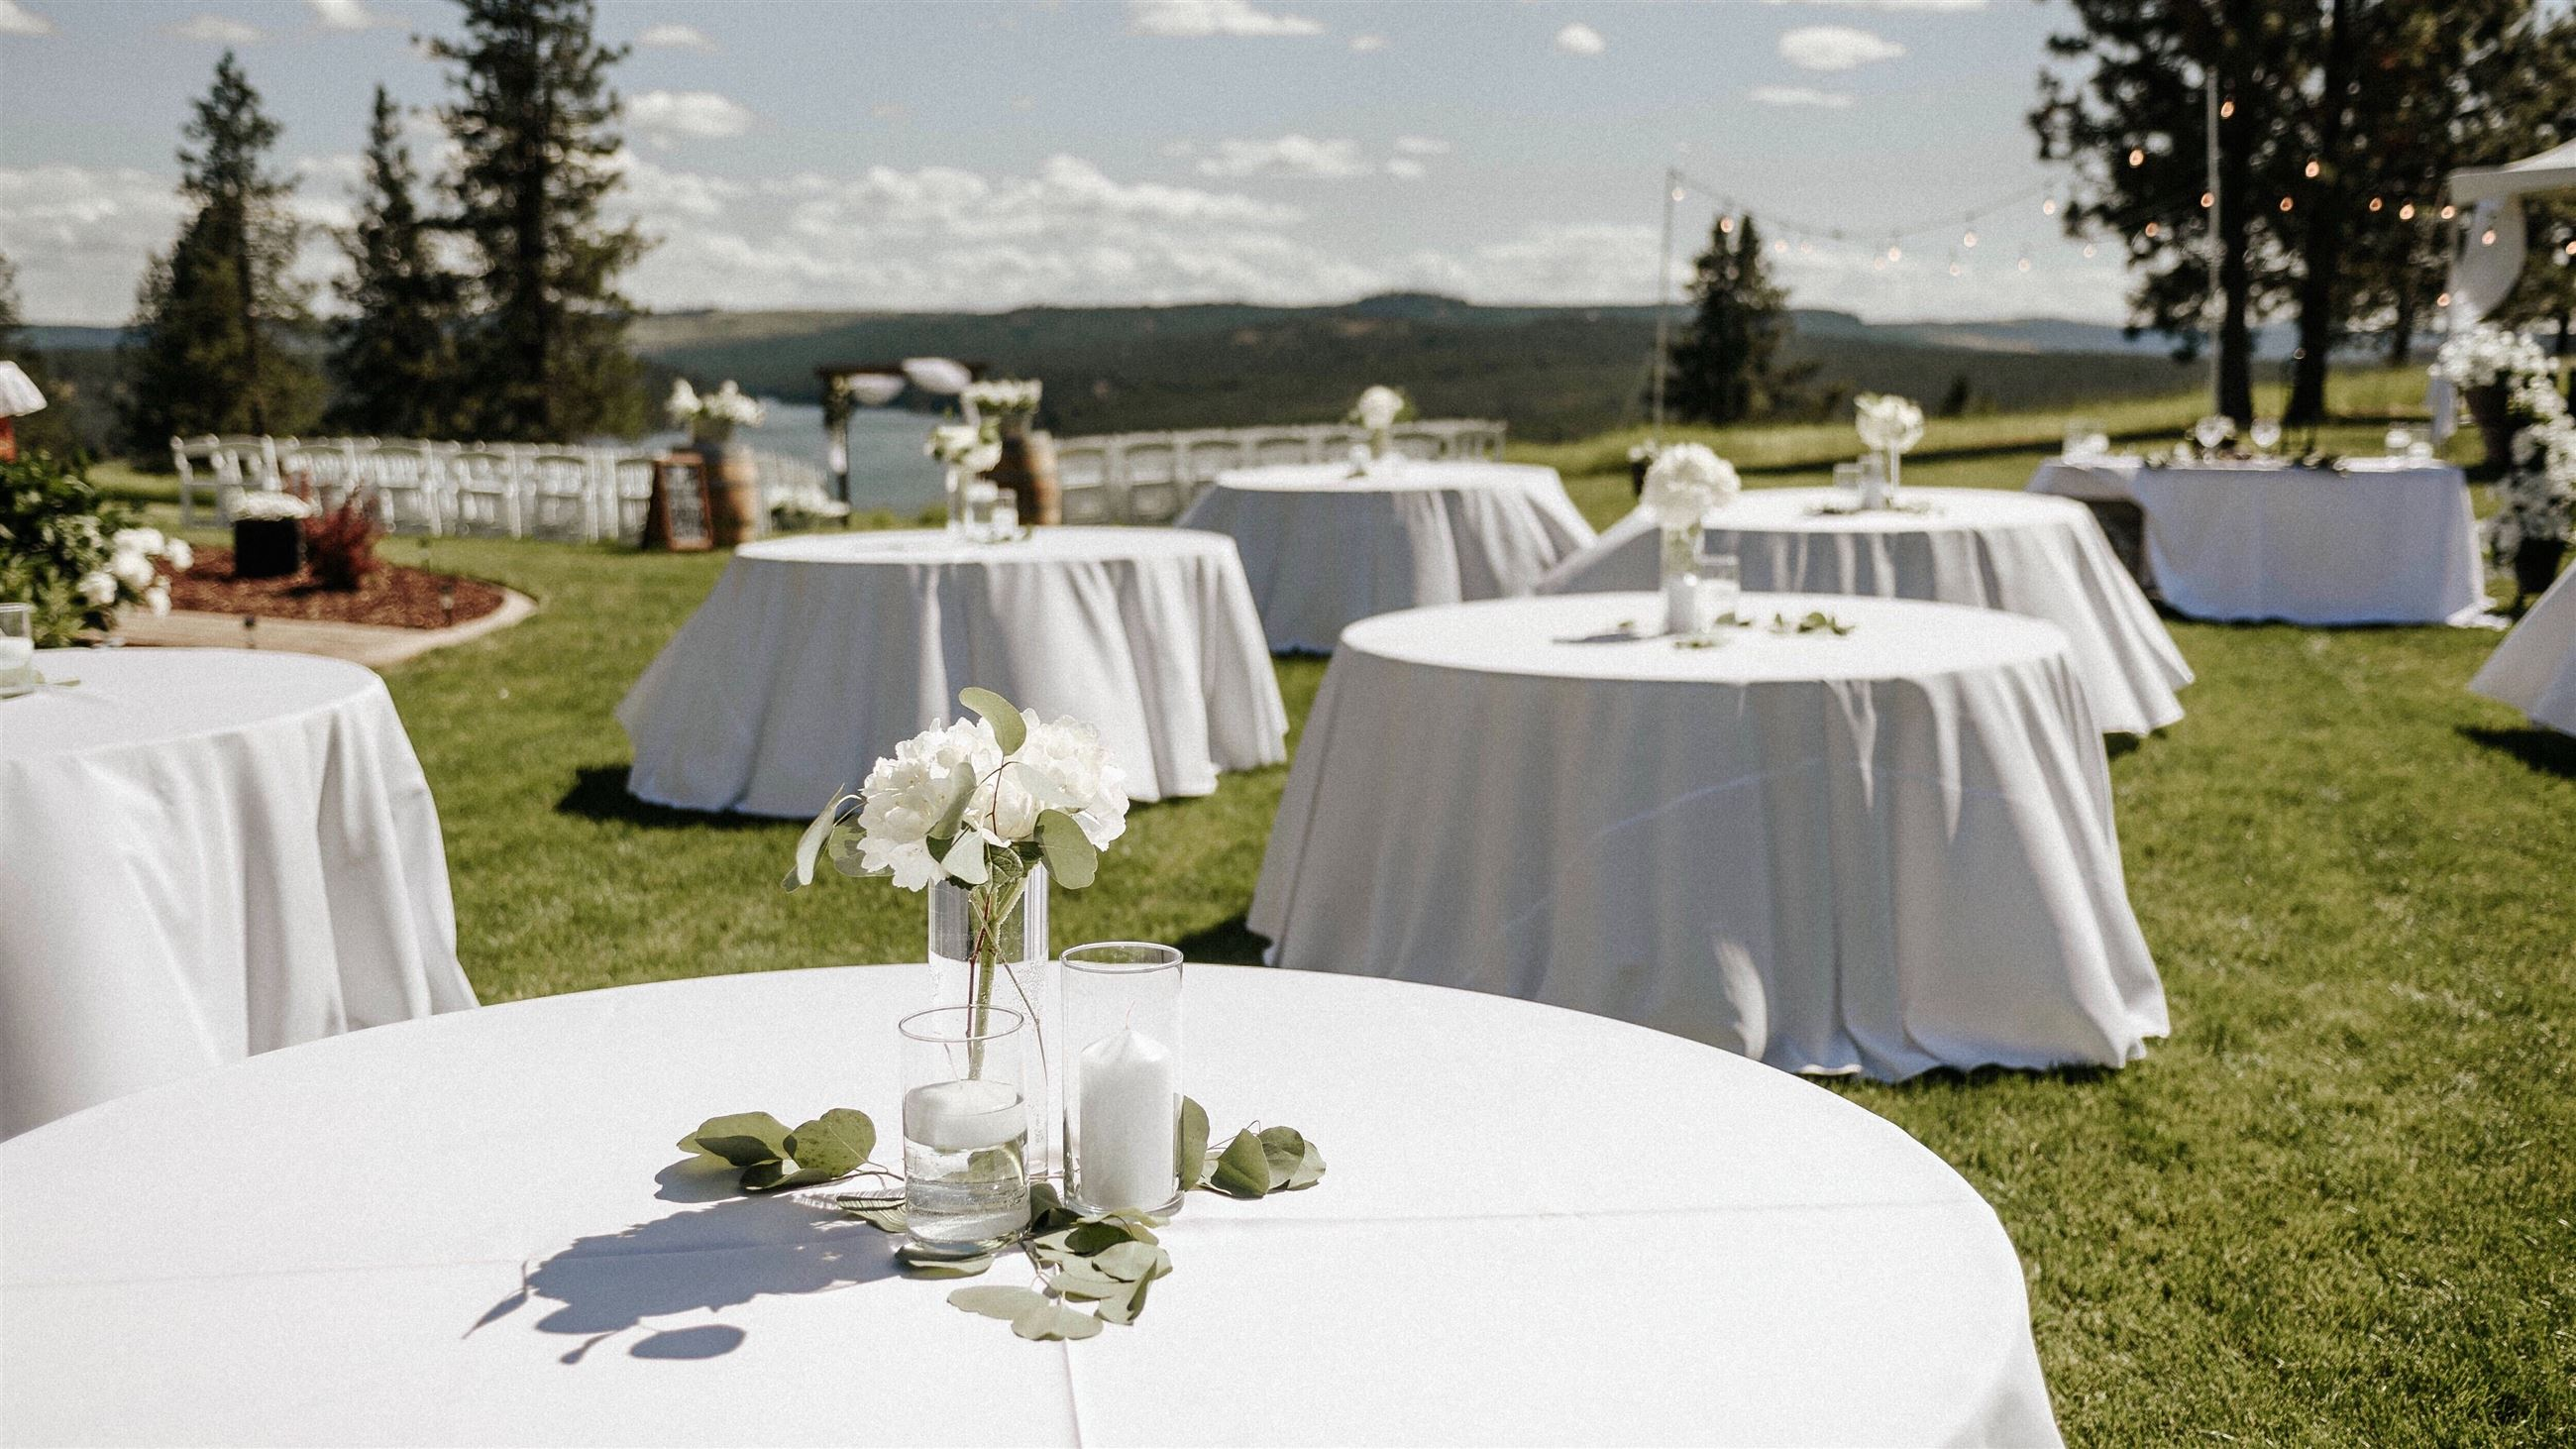 wedding reception overlooking mountains